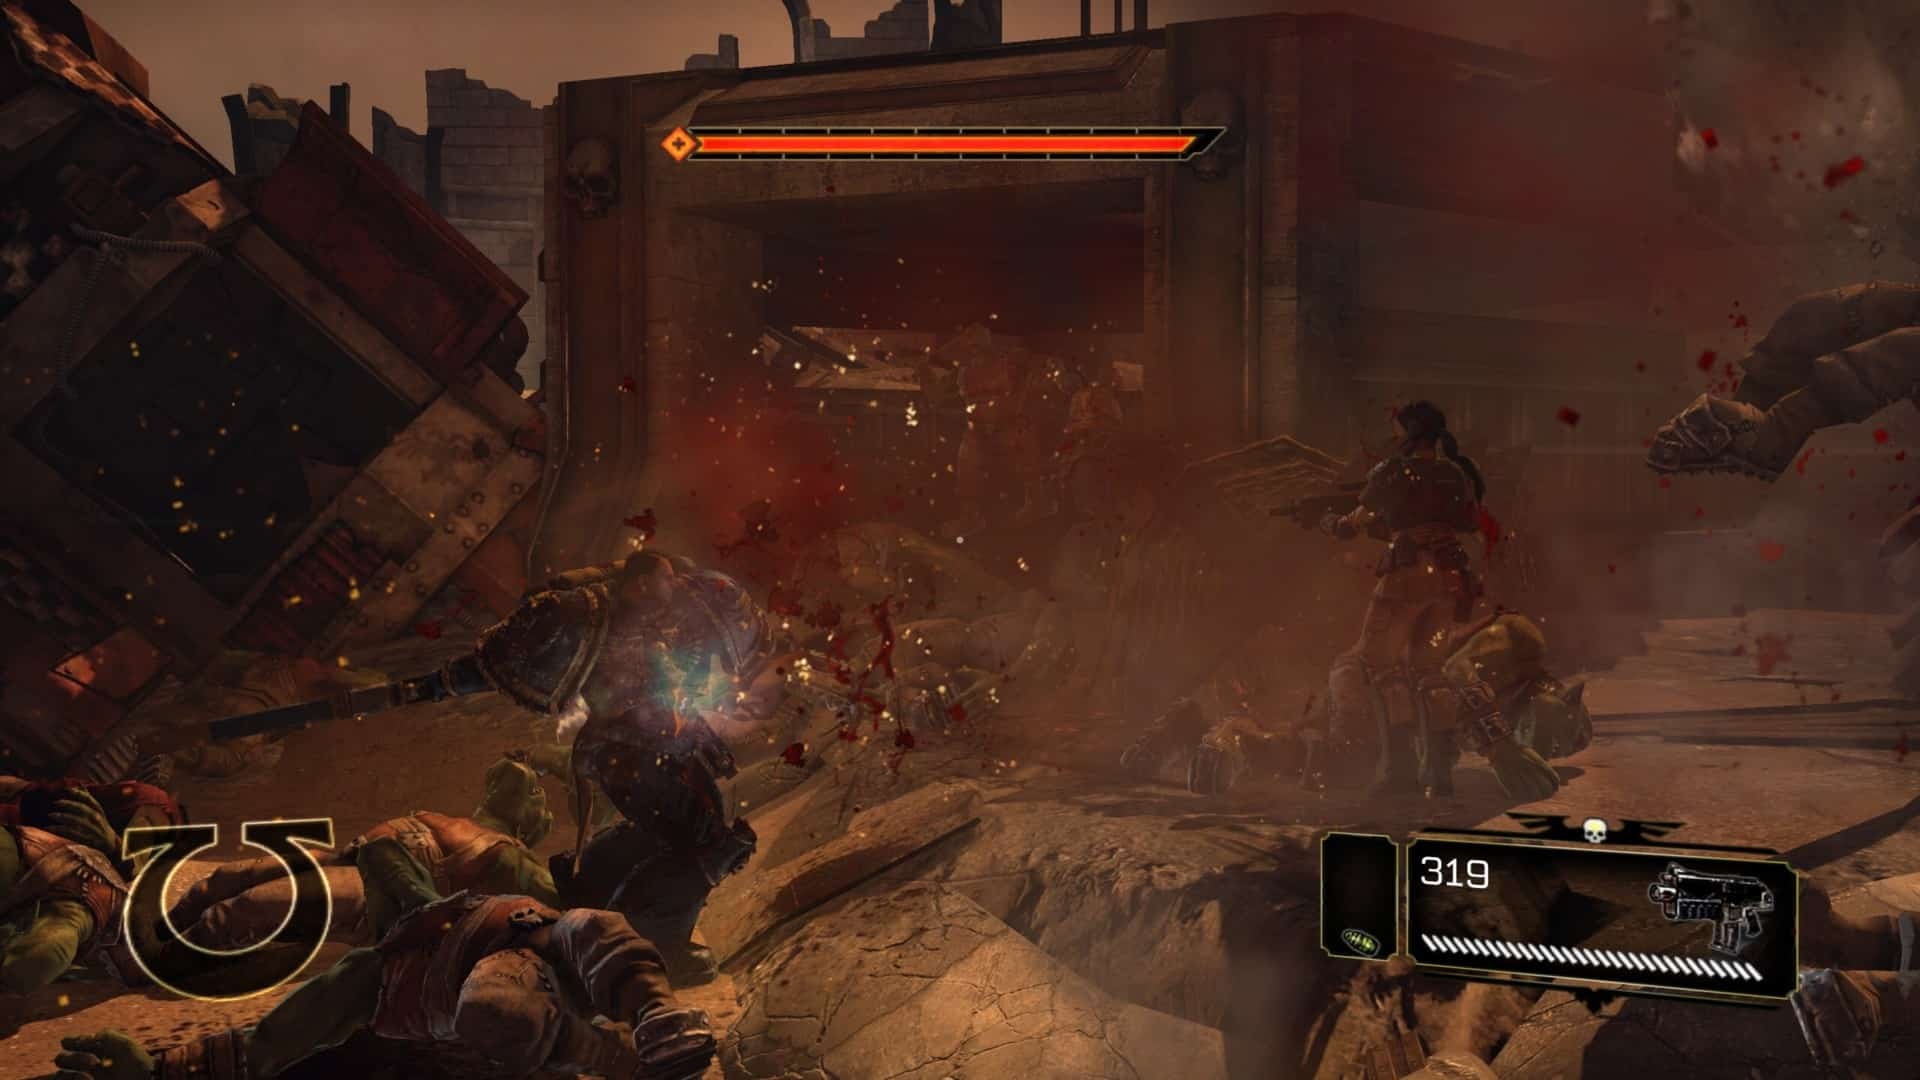 Warhammer 40,000: Space Marine 40k Relic Entertainment brutal chaos violence action and nothing else PS3 Xbox 360